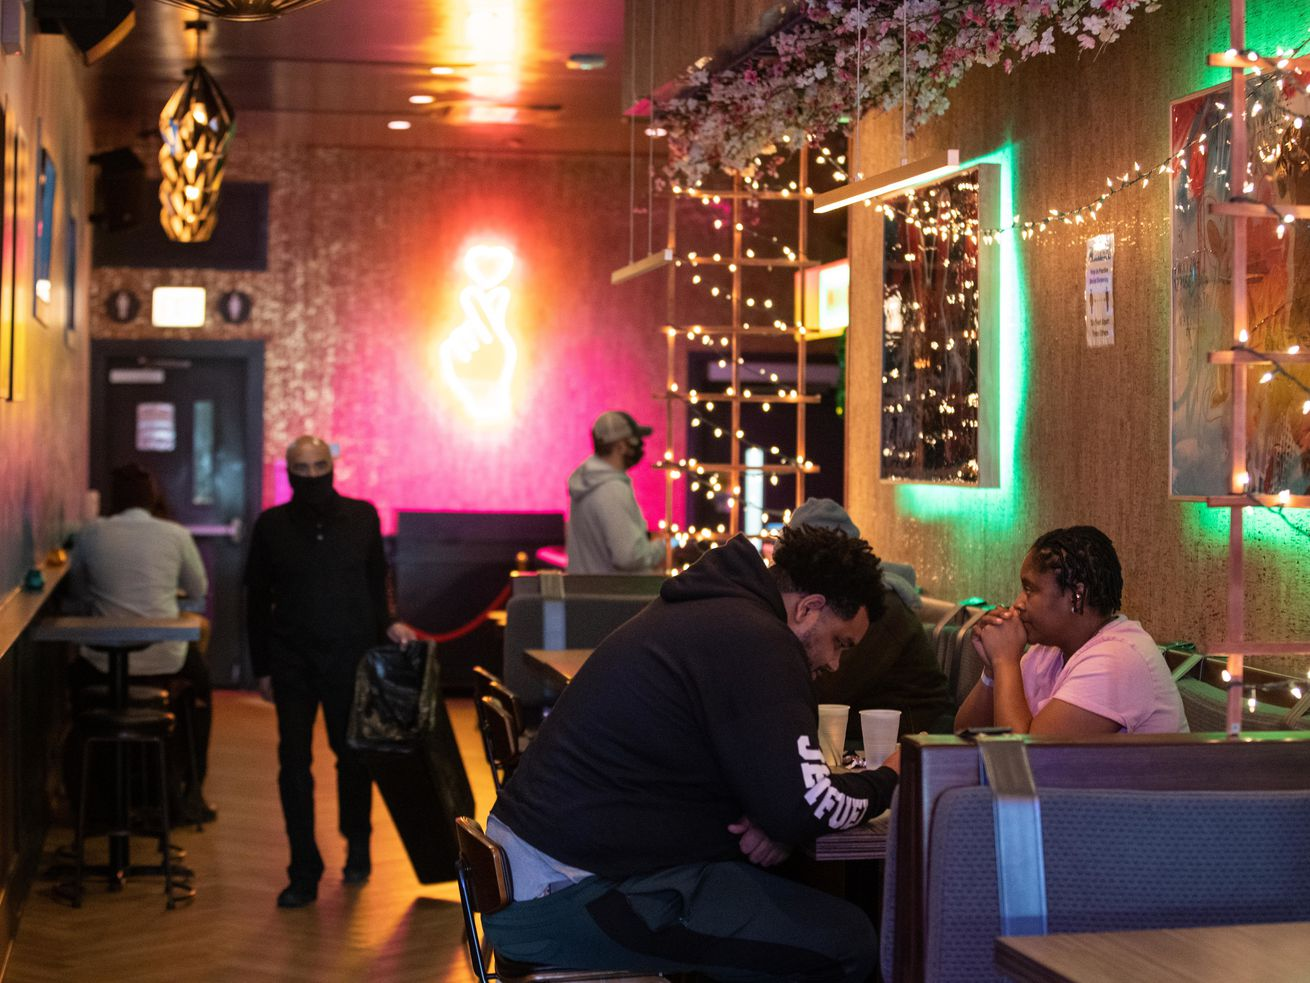 People eat in Miki's Park in River North last month. Indoor capacity is expanding to the lesser of 50% or 100 people per room at establishments across the city and suburbs.